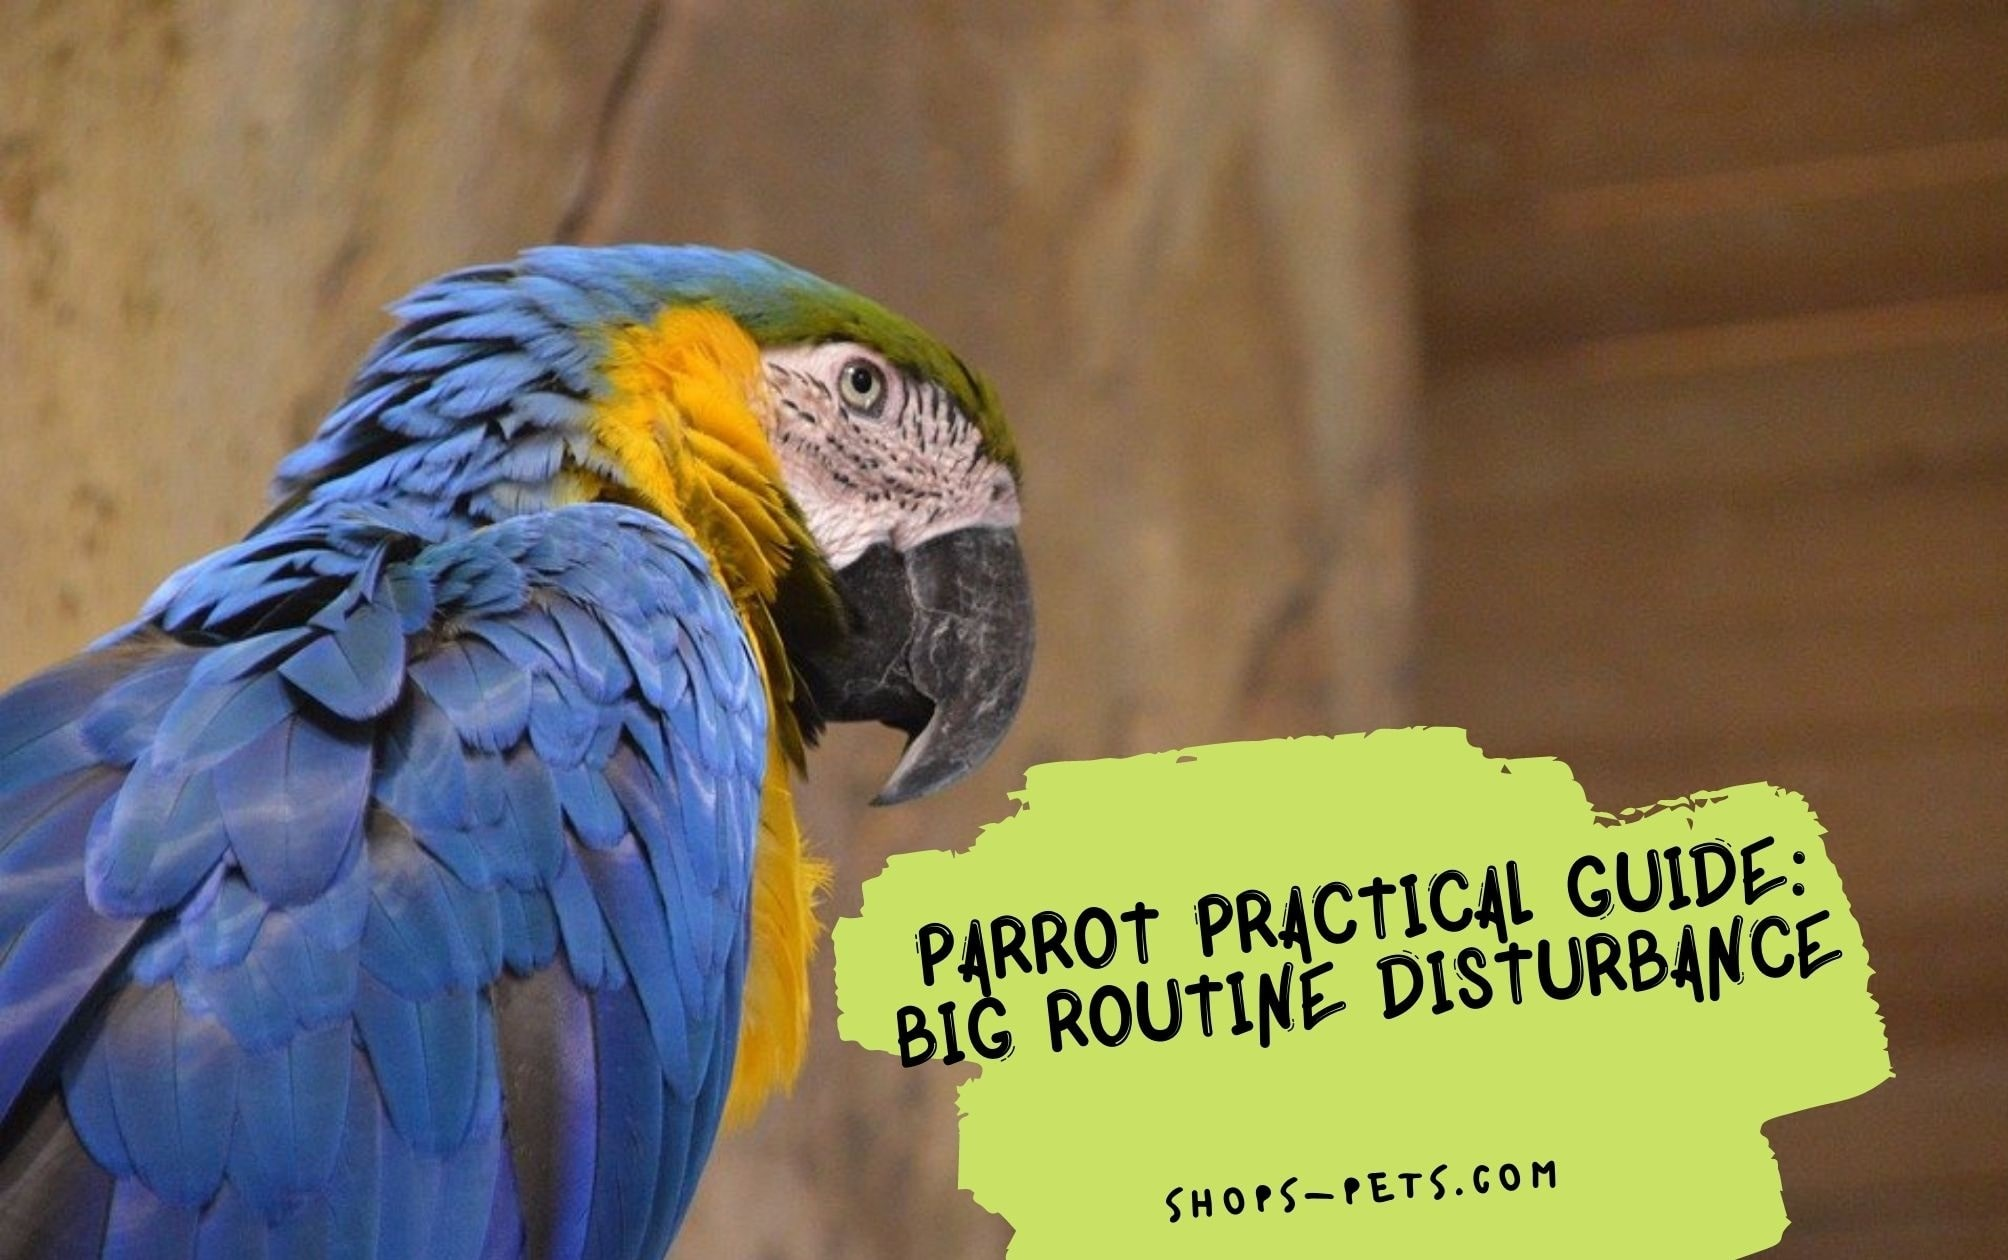 Parrot Practical Guide Big Routine Disturbance